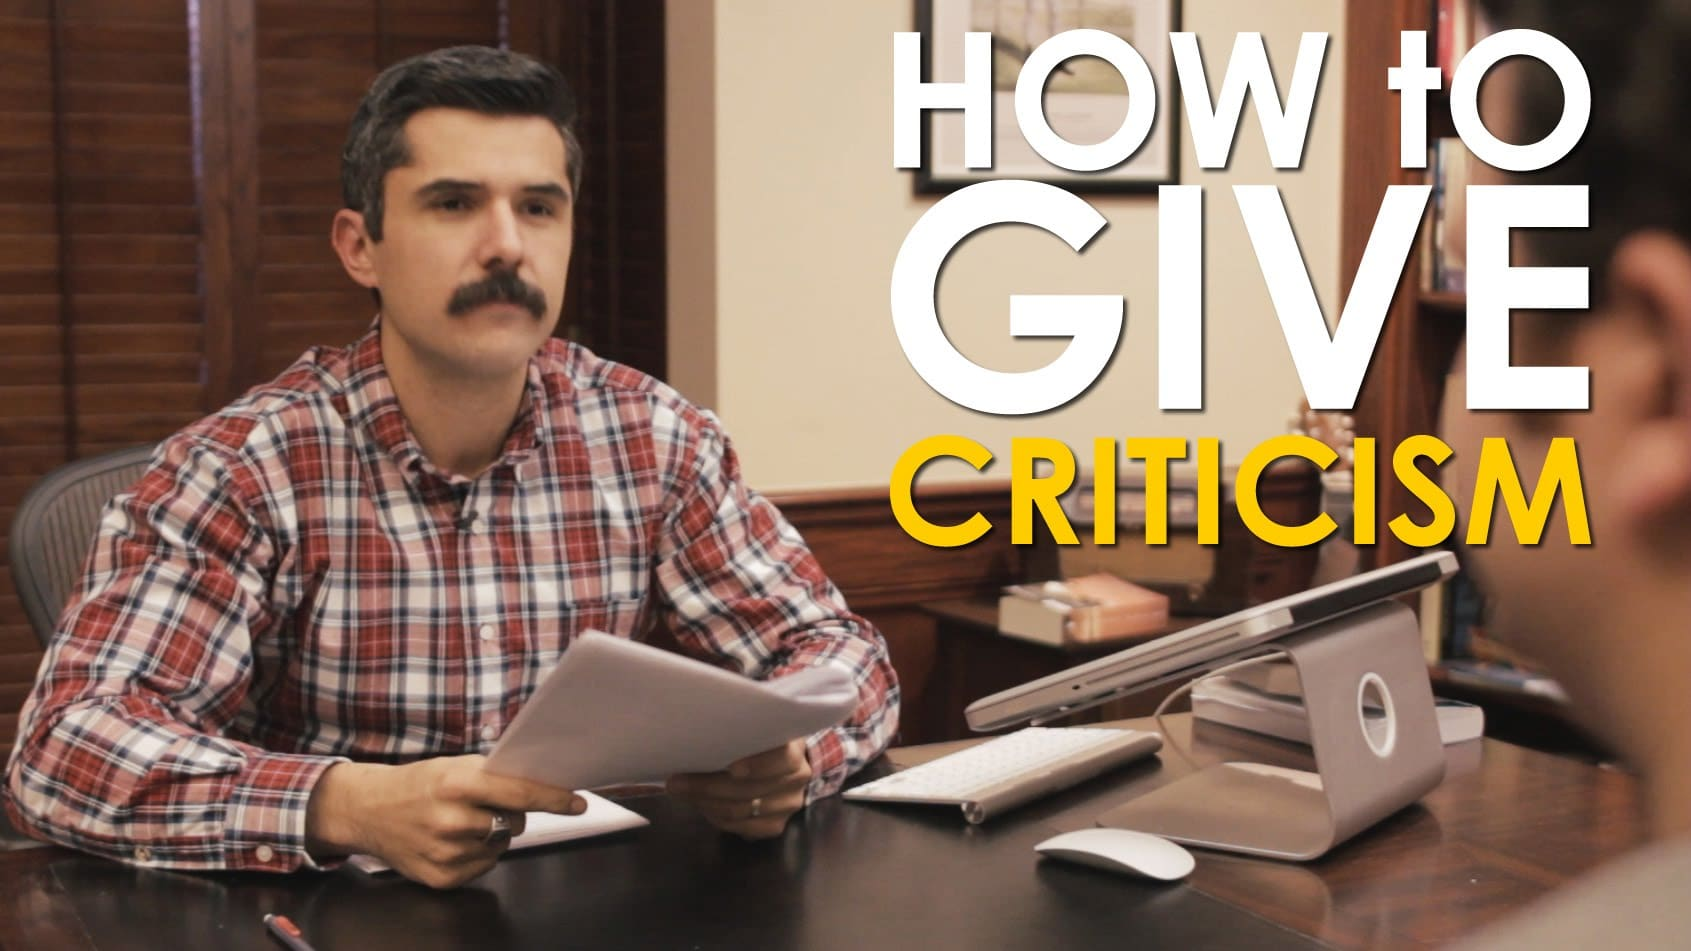 How to Give Criticism | The Art of Manliness